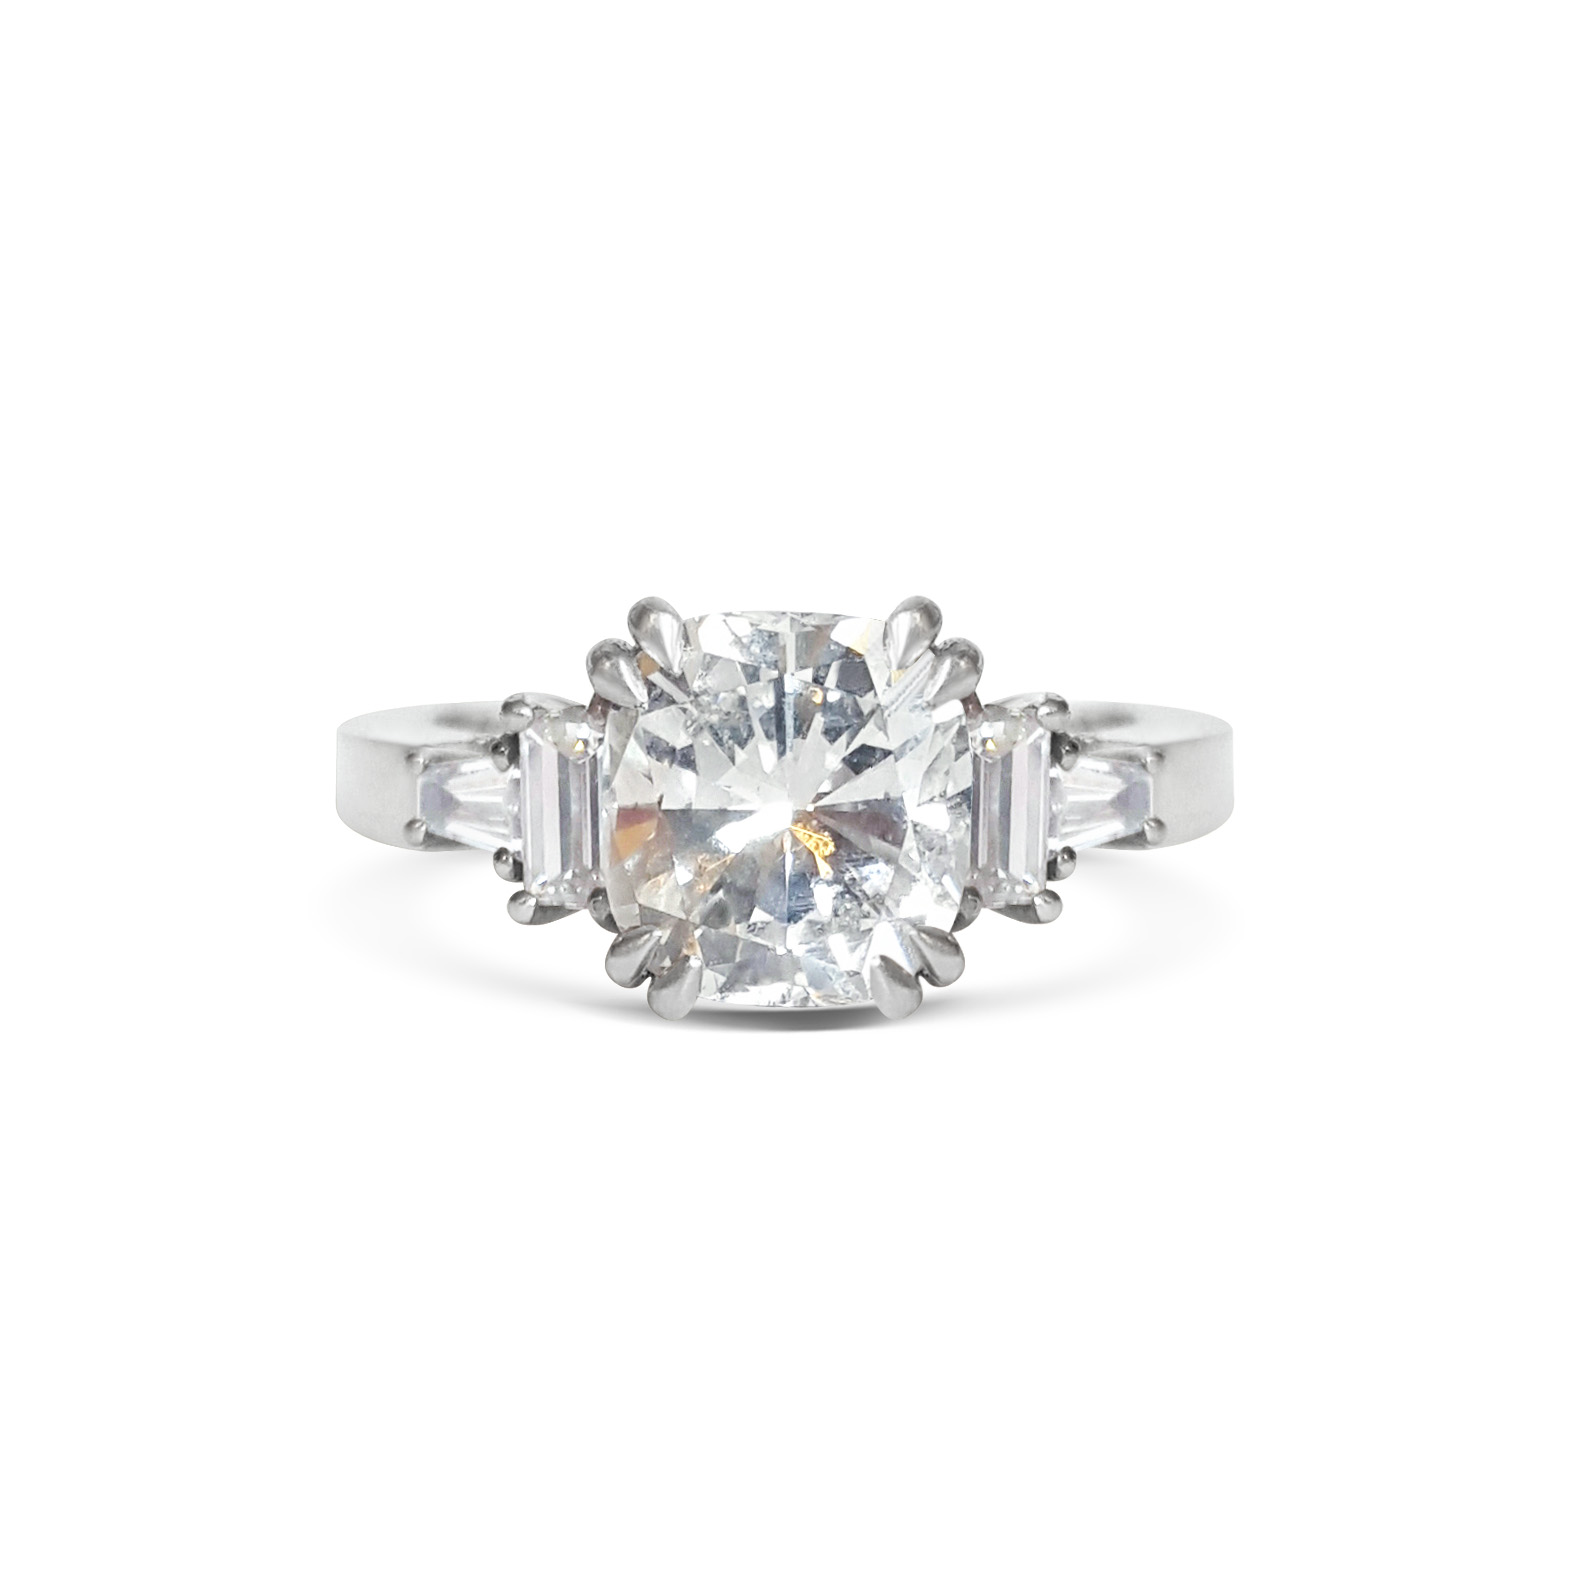 Bespoke Archive ~ Sandra's Engagement Ring